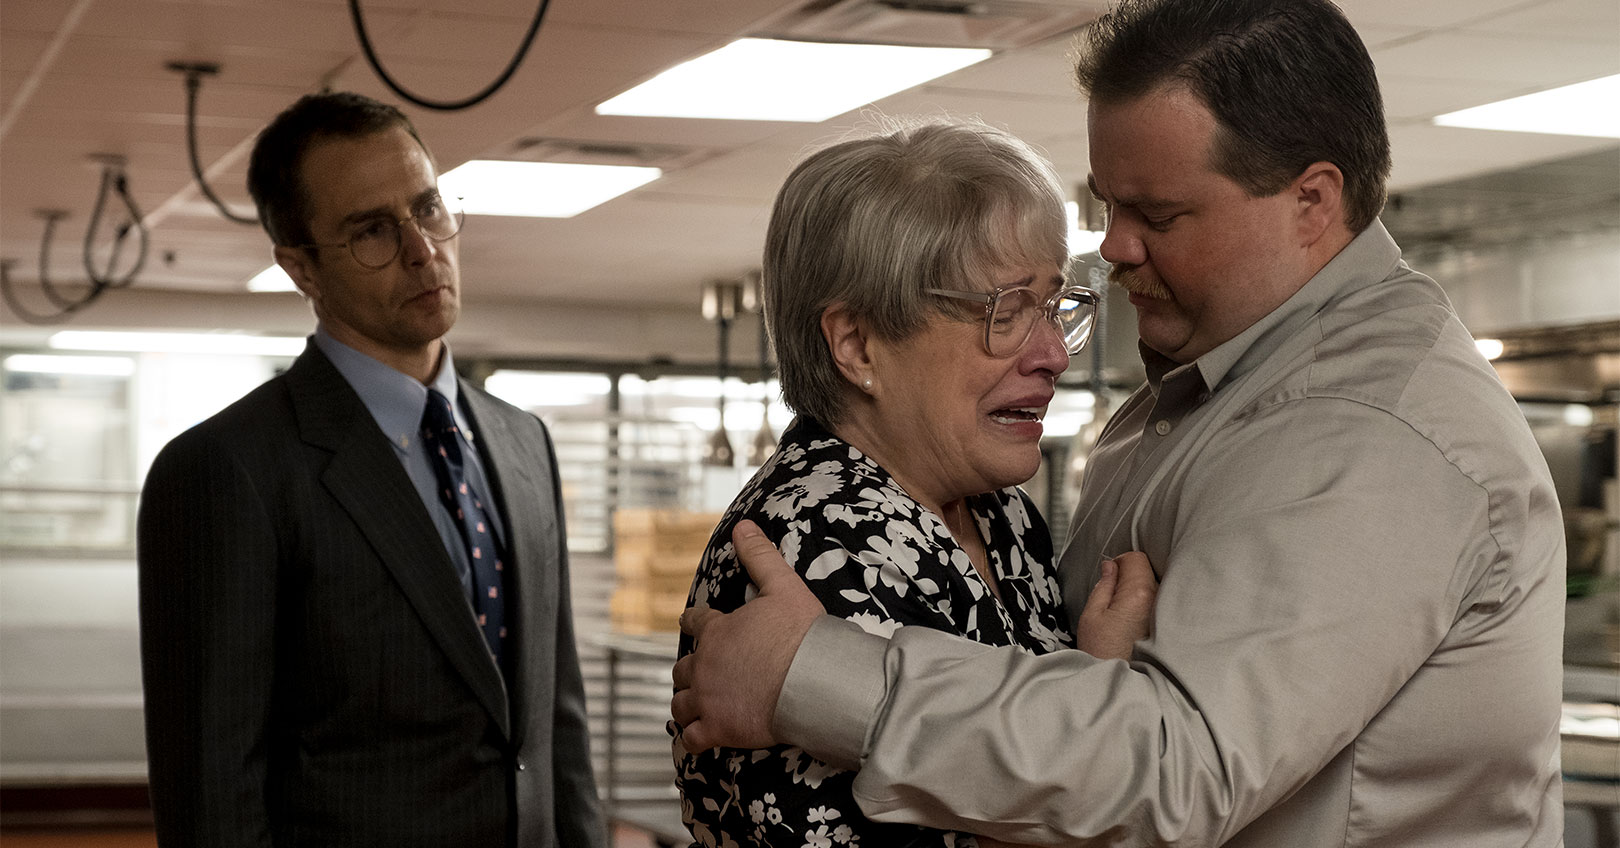 Richard Jewell - Sam Rockwell, Kathy Bates, and Paul Walter Hauser